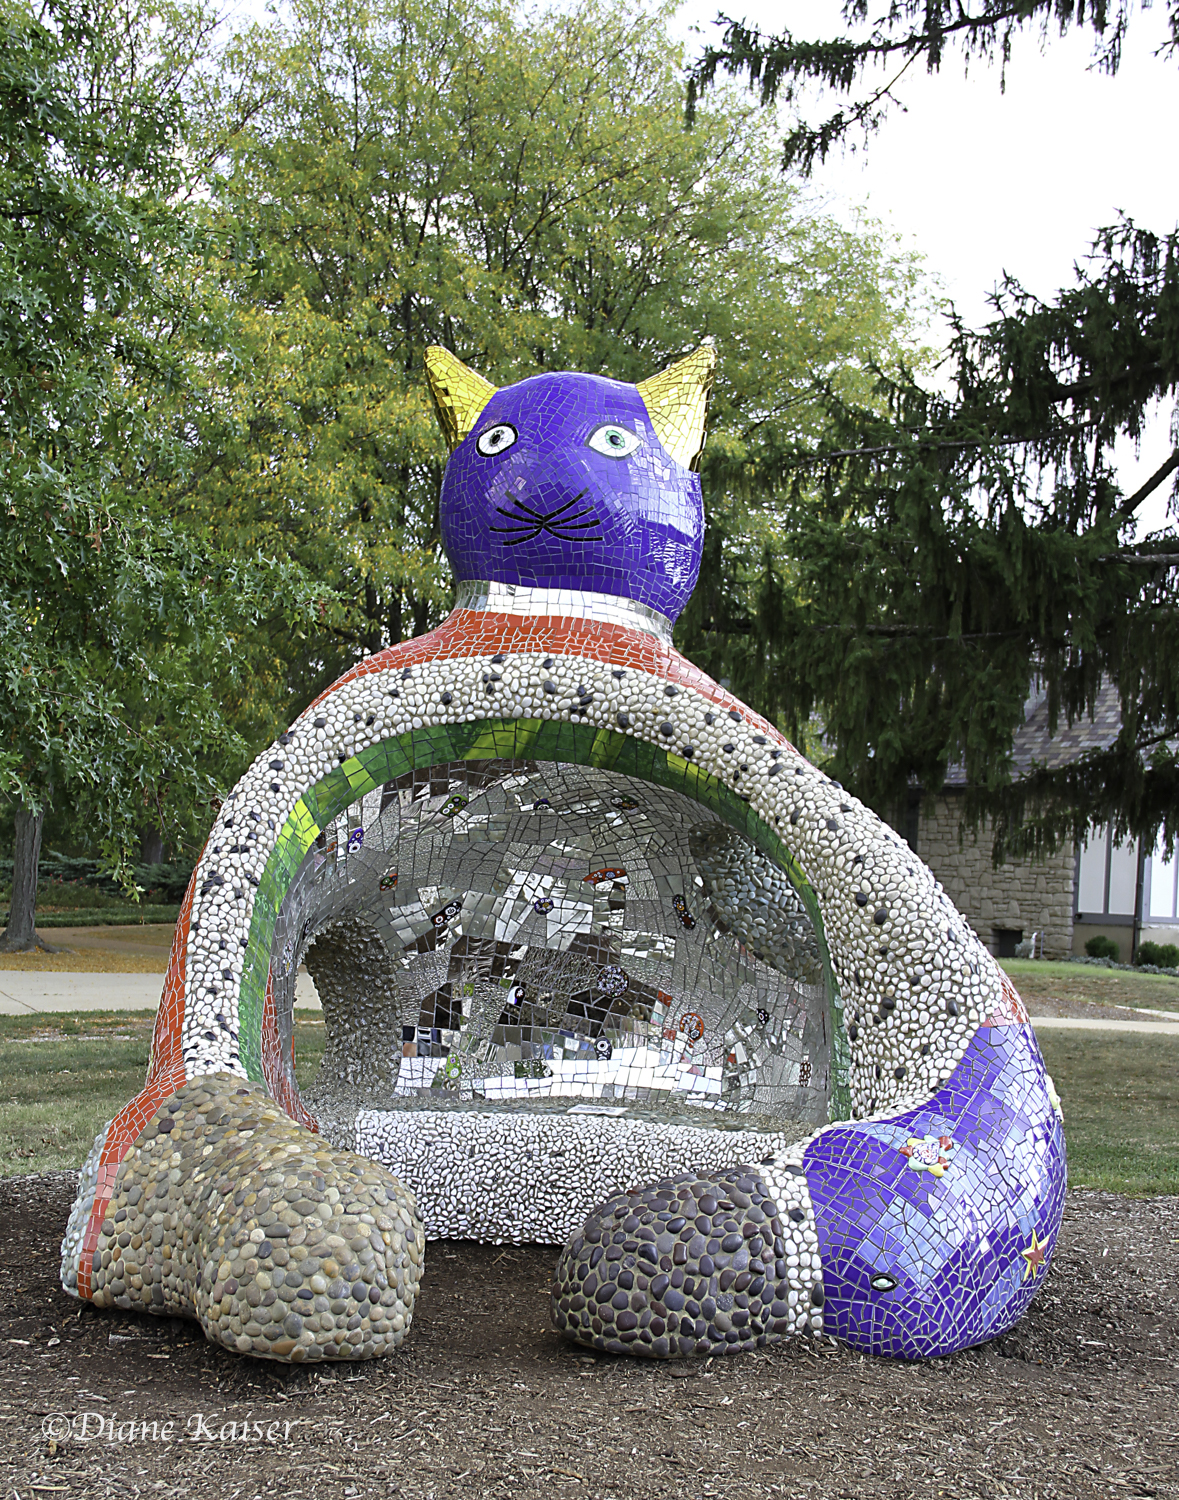 Ricardo Cat,  by Niki de Saint Phalle, 1999, urethane skin on steel, ceramic tile, stained glass mirrors, stones, in epoxy grout, silicone grout.